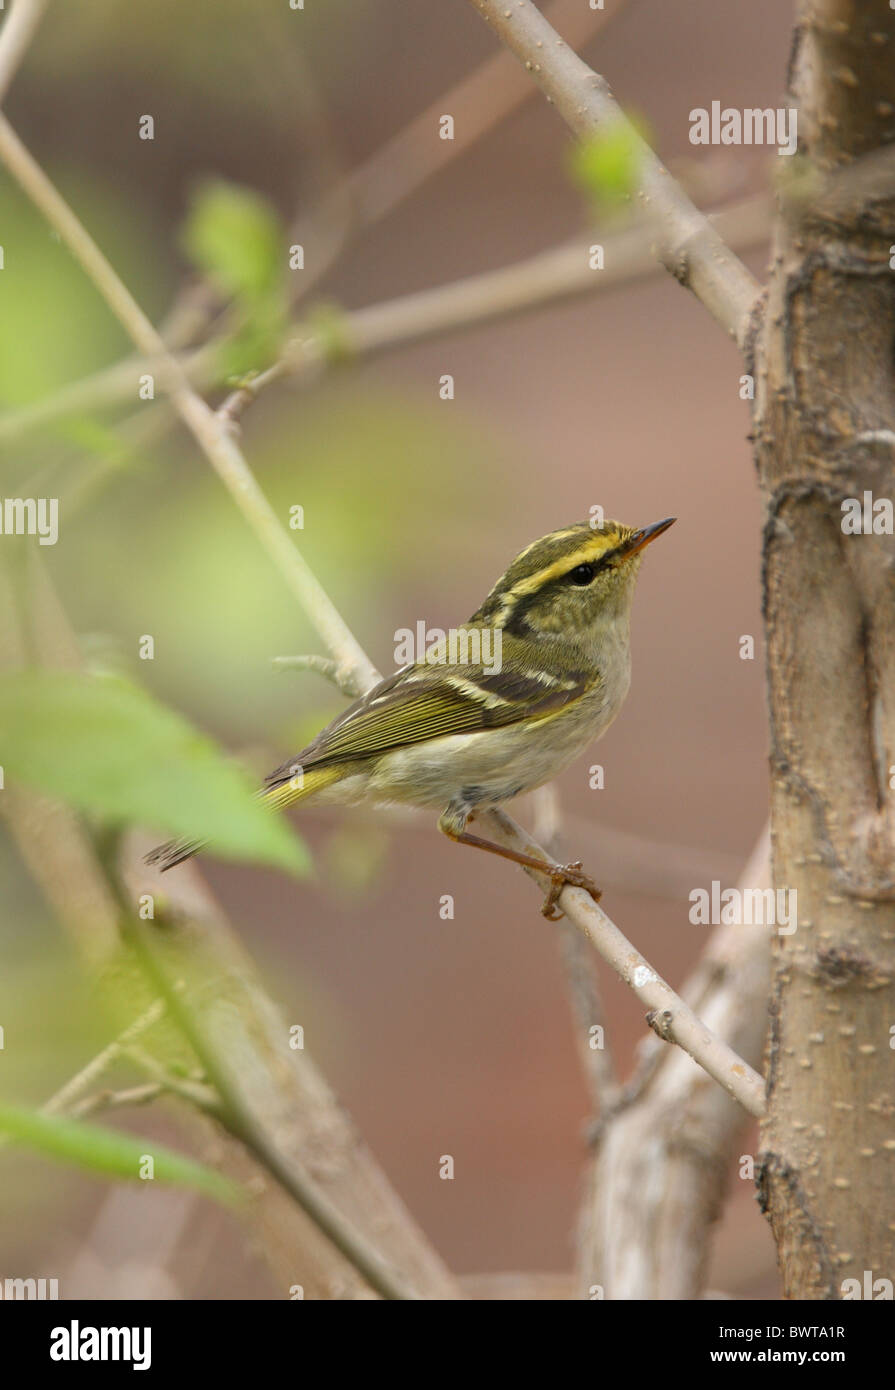 Pallas's Warbler (Phylloscopus proregulus) adult, perched in bush, Hebei, China, may Stock Photo